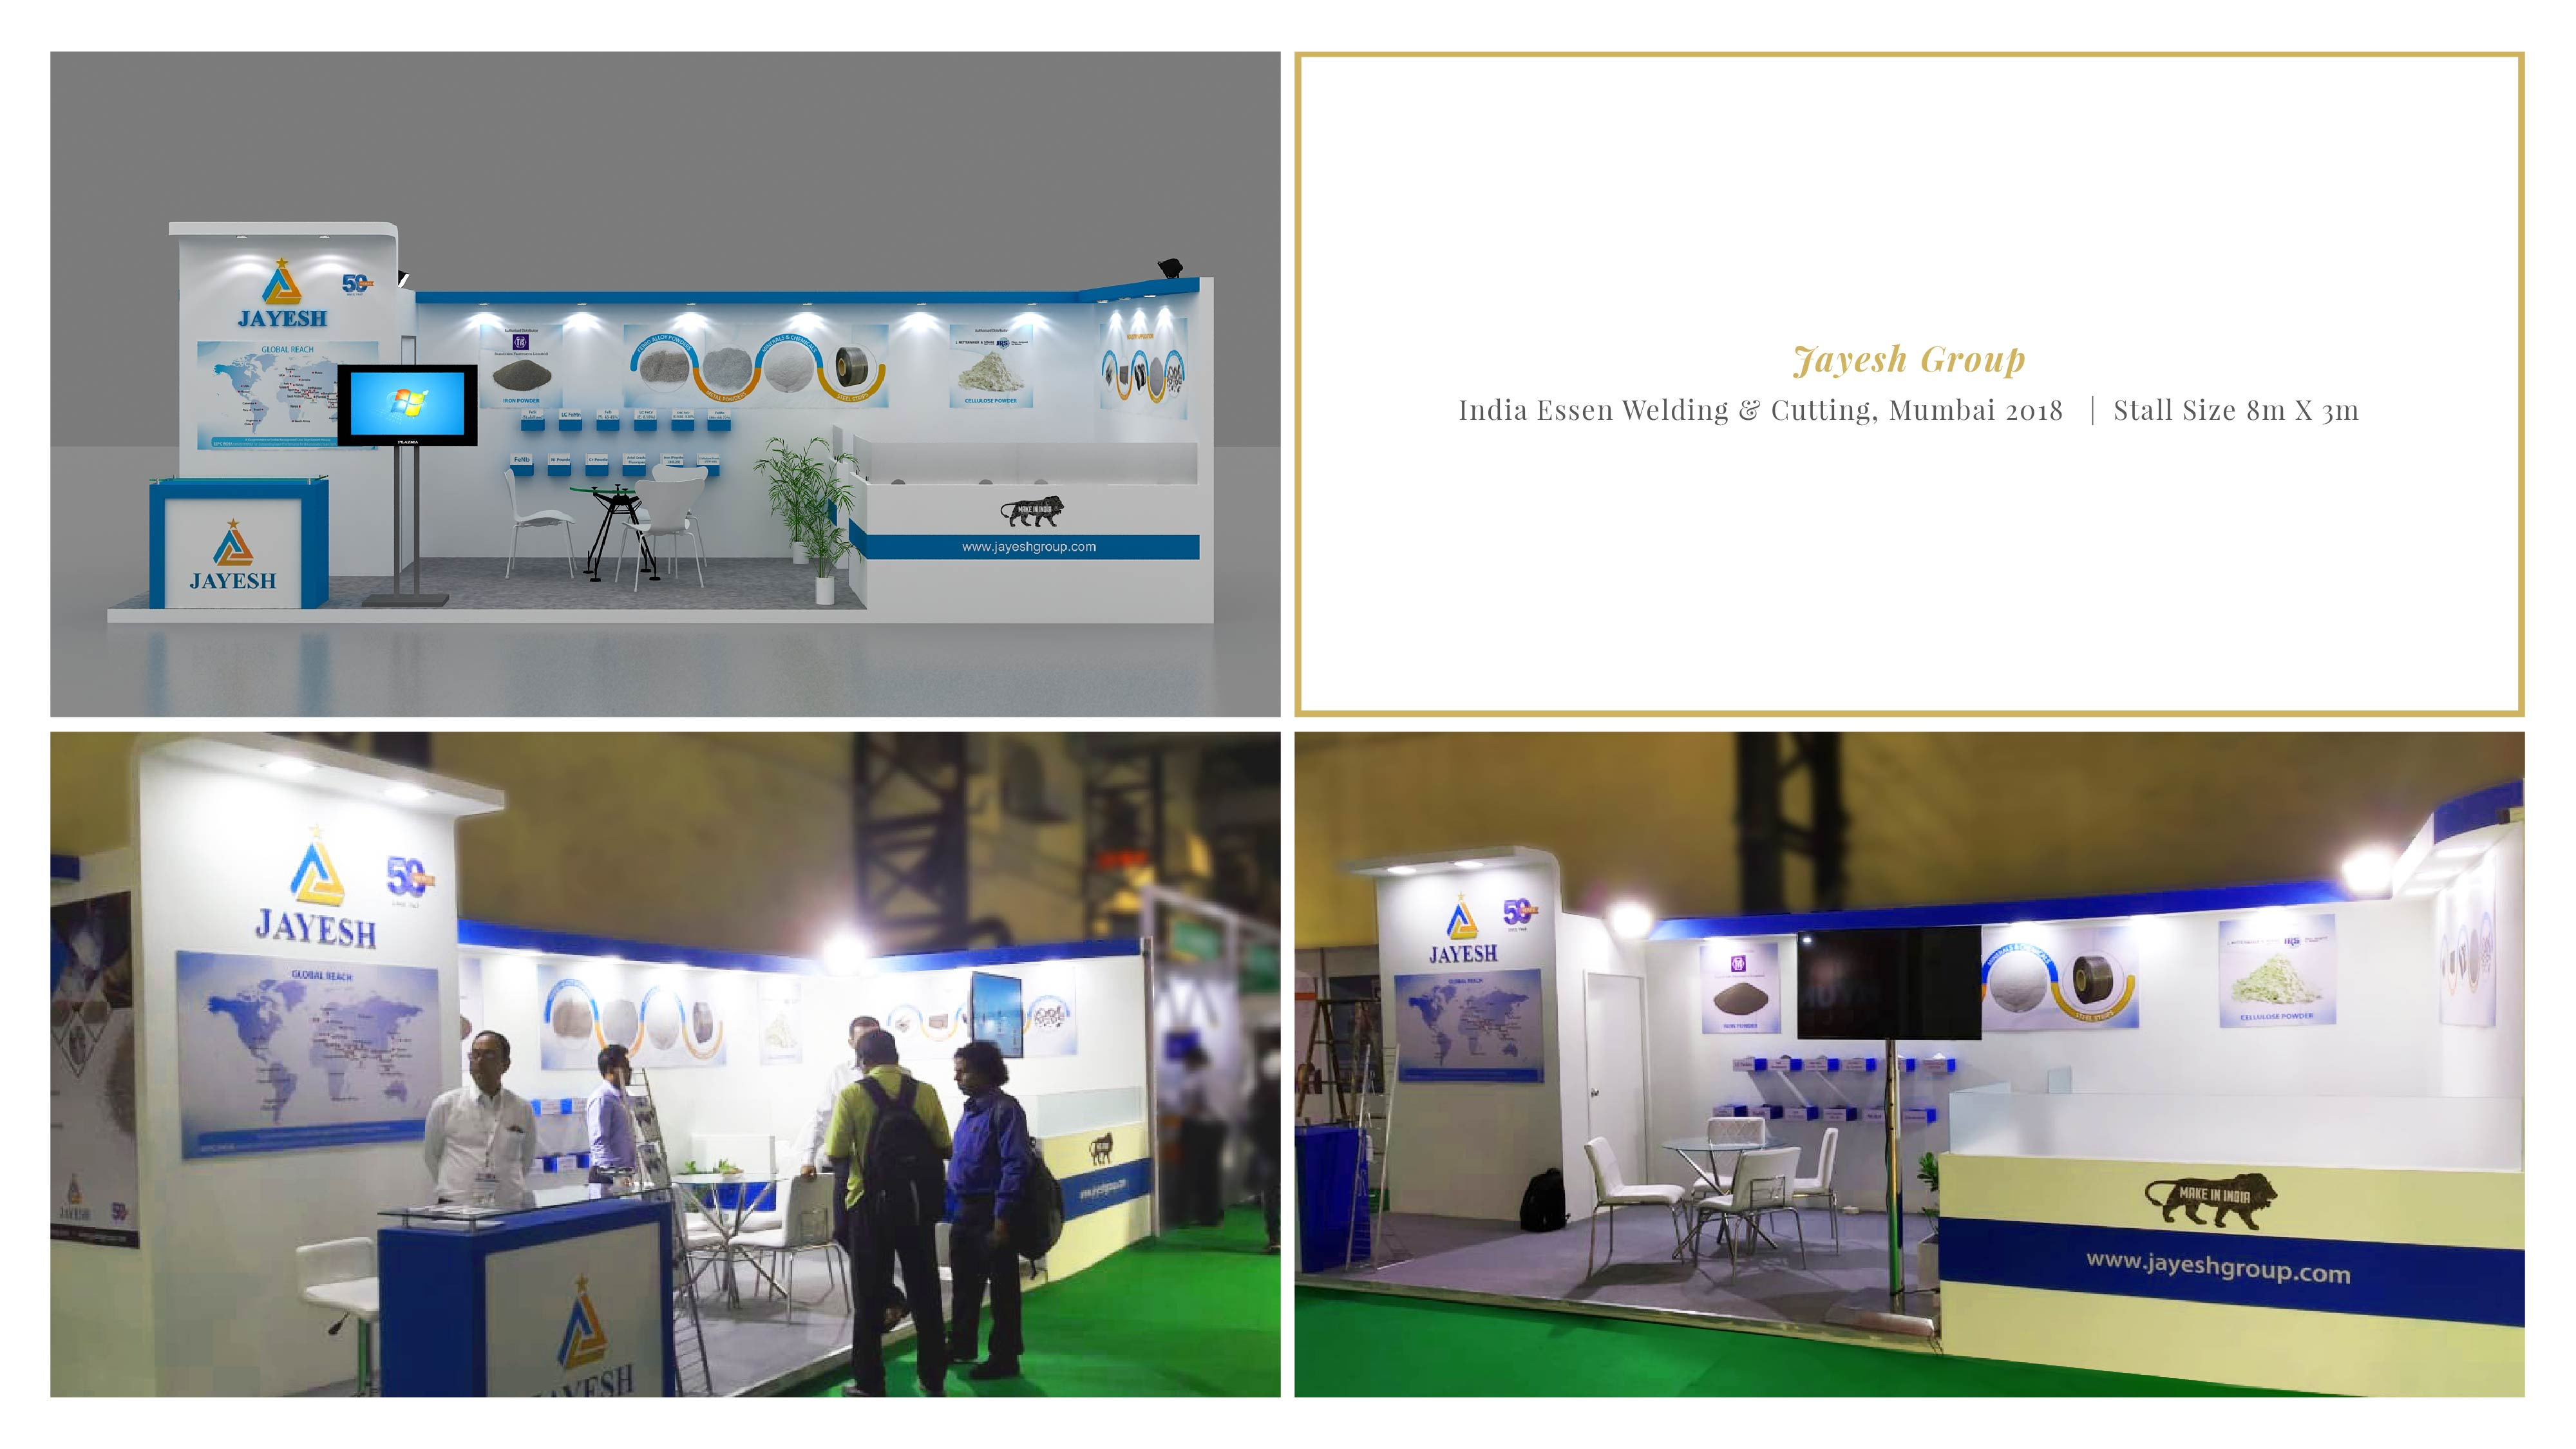 Jayesh Group - India Essen Welding & Cutting 2018, Mumbai